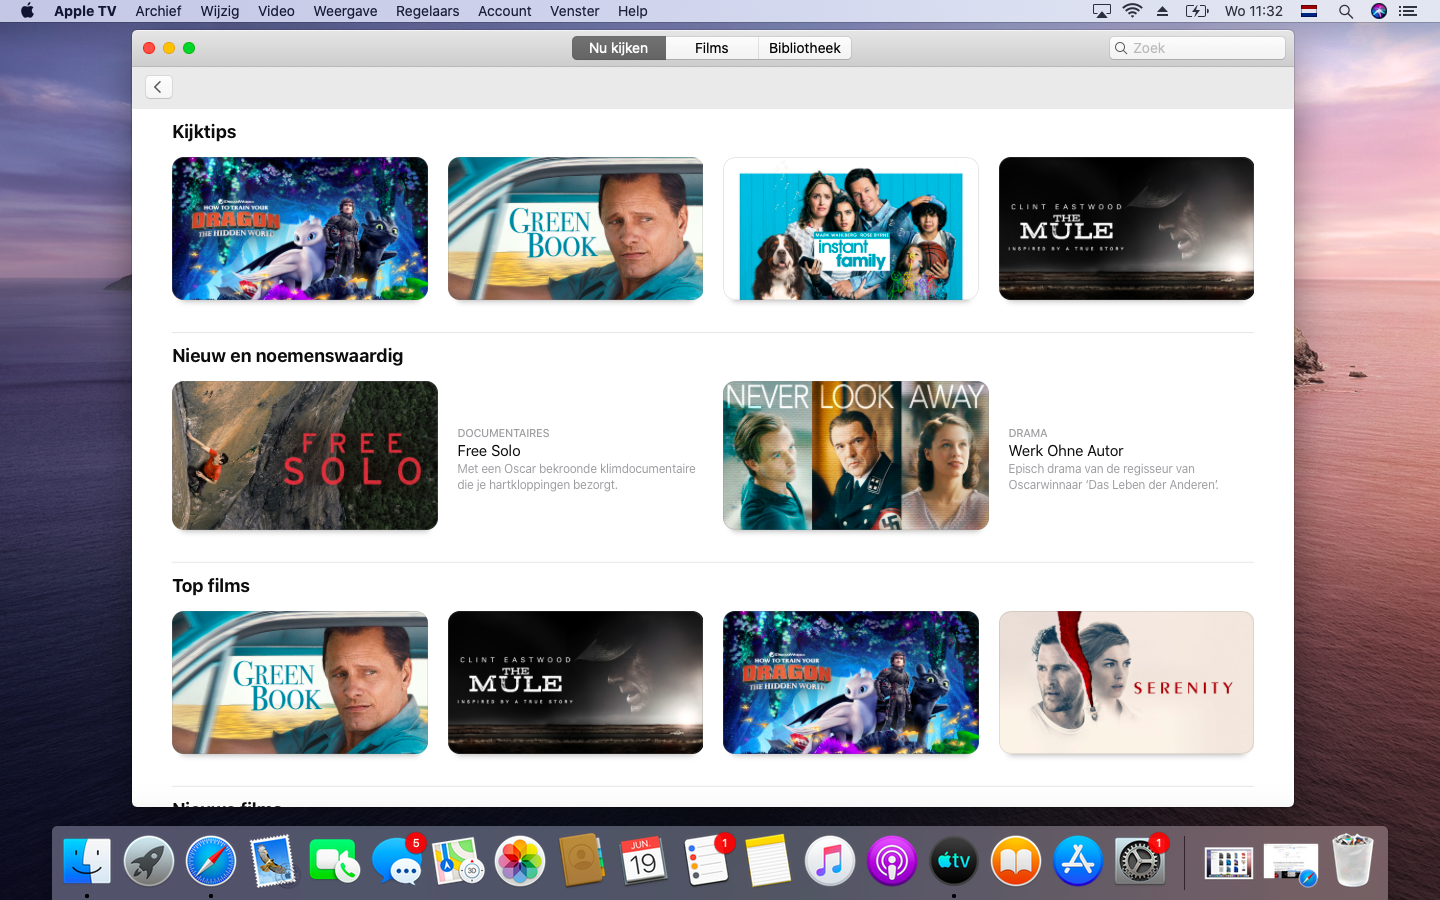 macOS Catalina iTunes Movies TV App